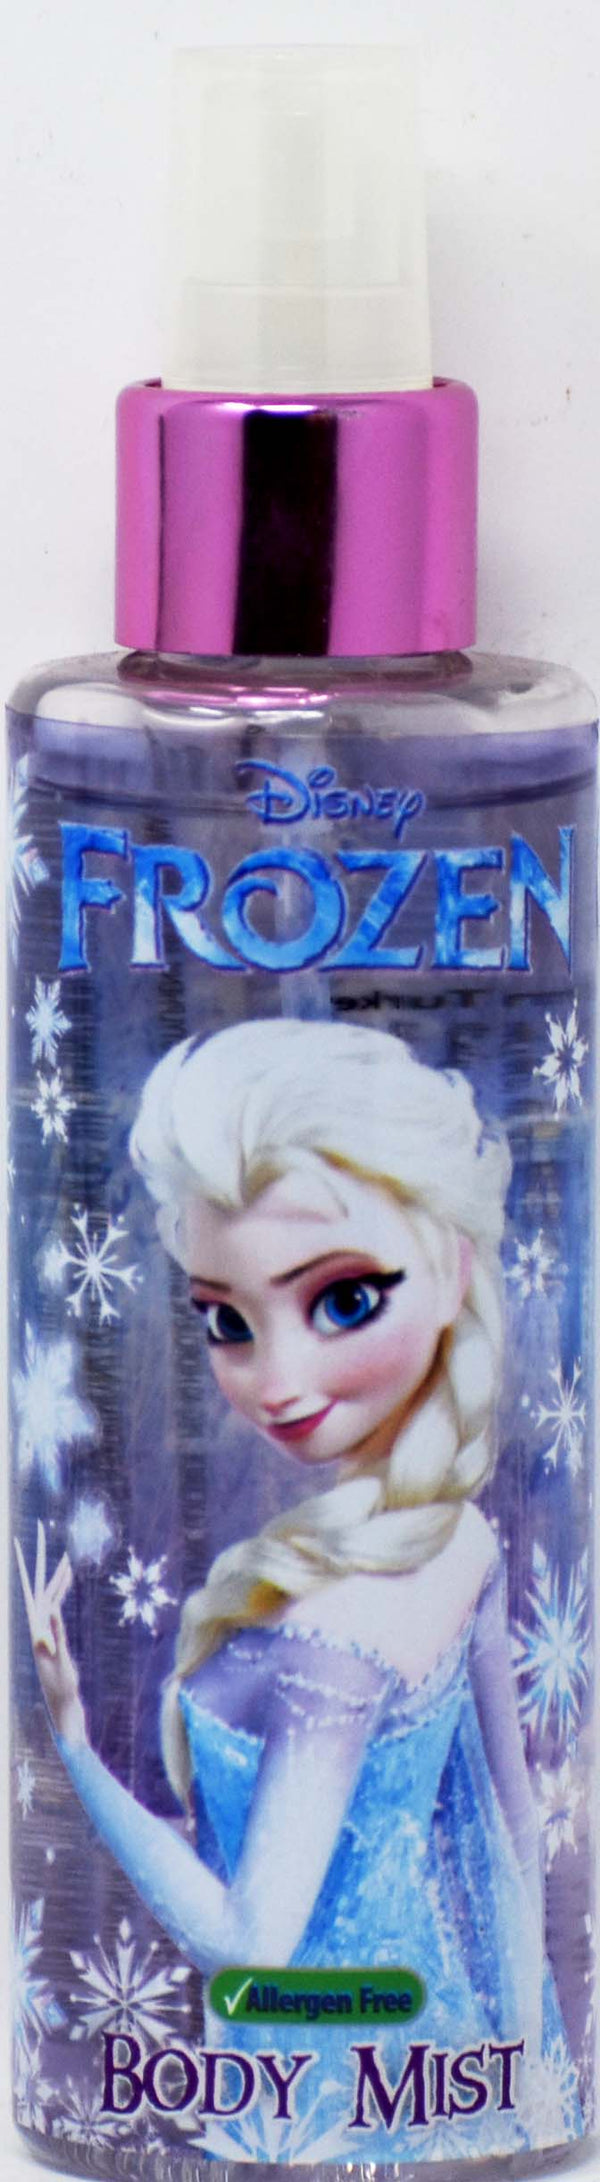 Disney Frozen Body Mist, 160 ml